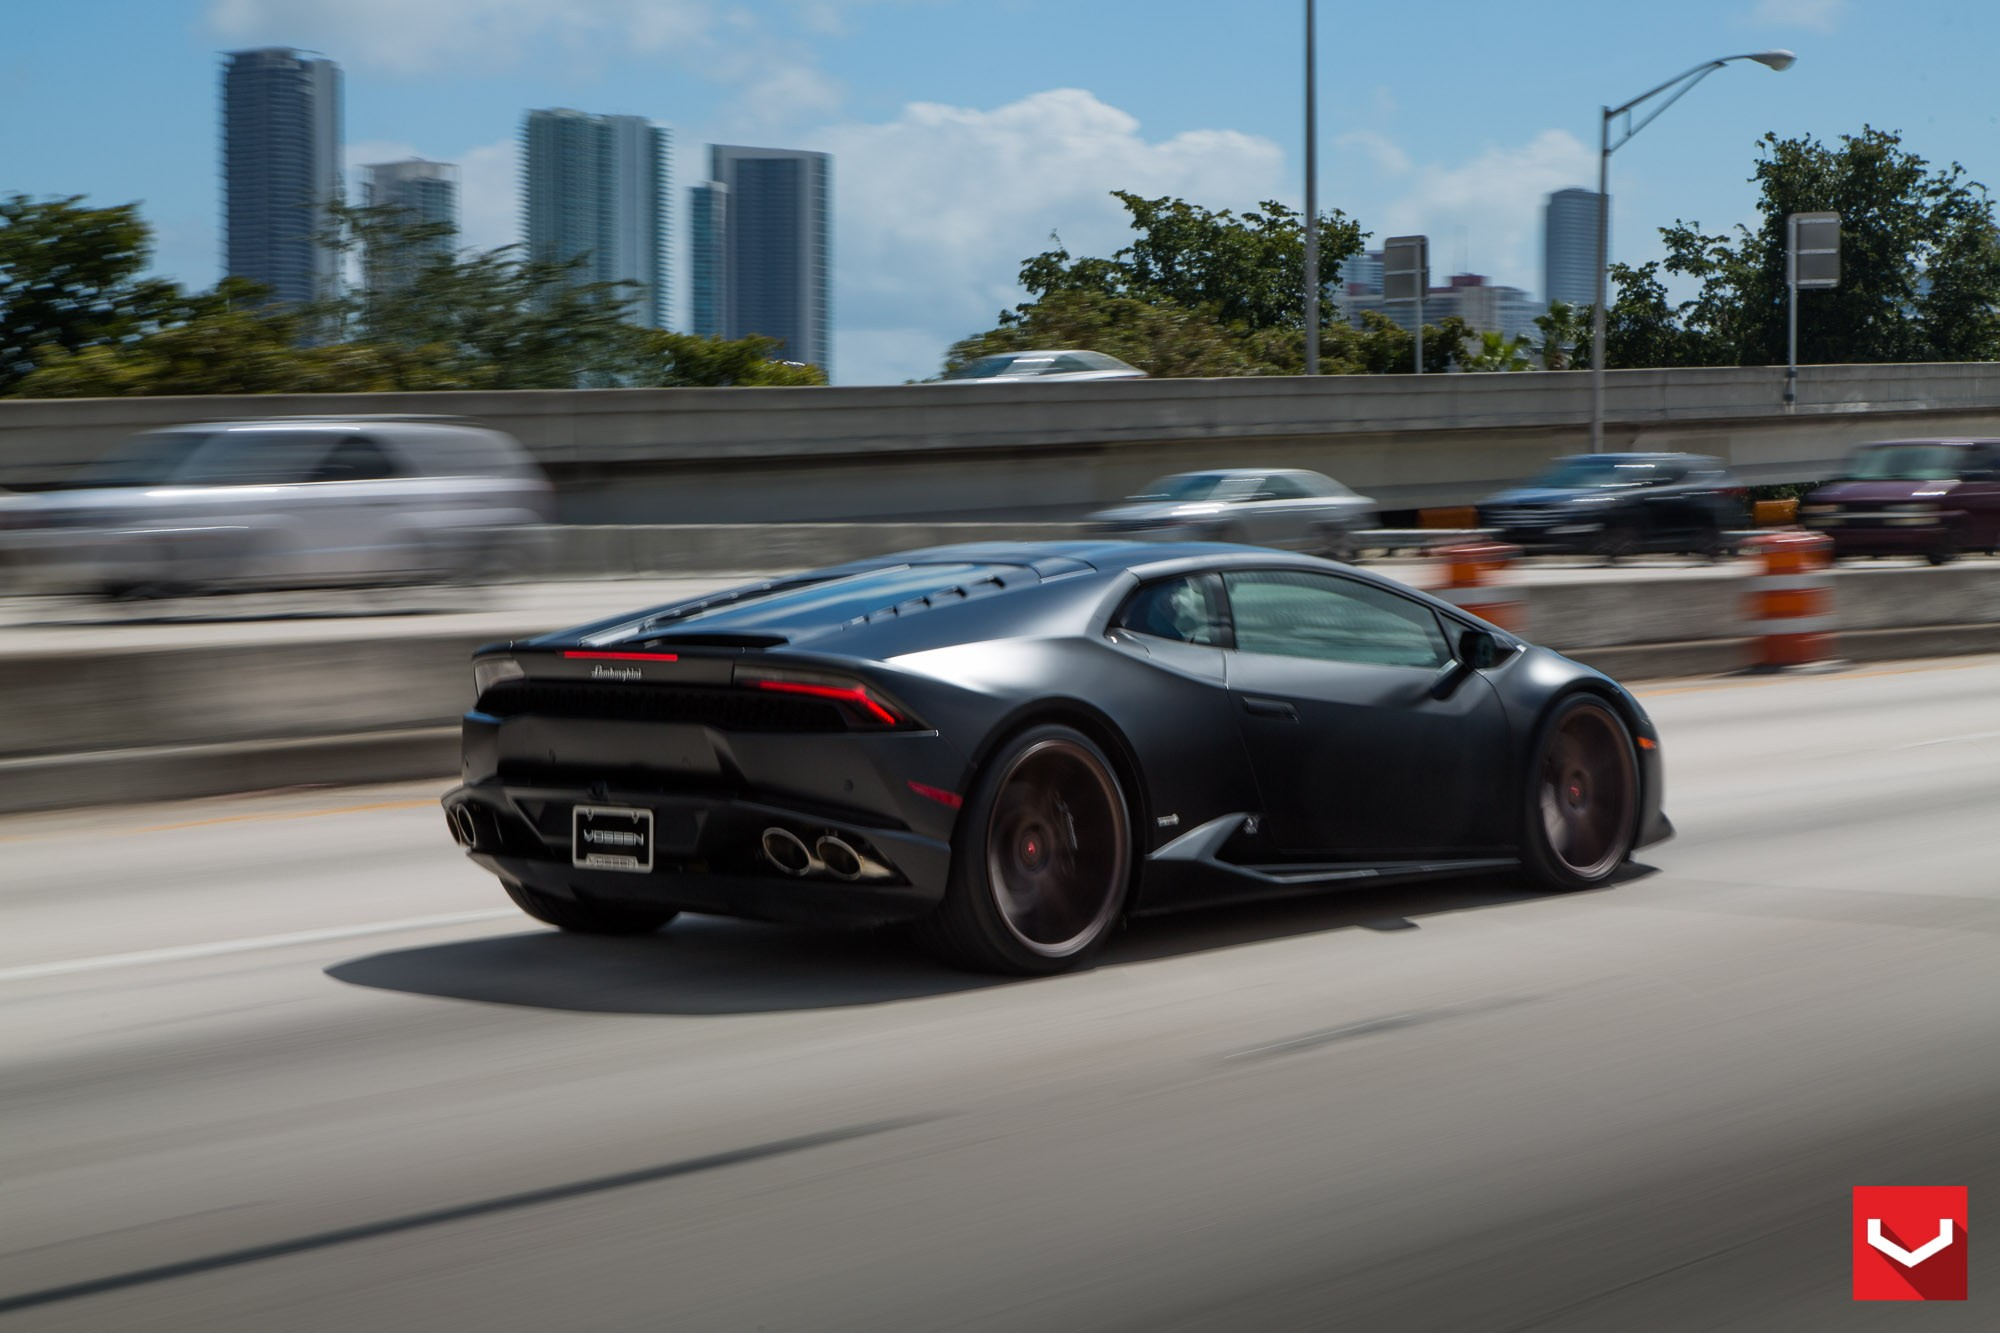 Blackskullz Lamborghini Huracan And Mclaren 650s On